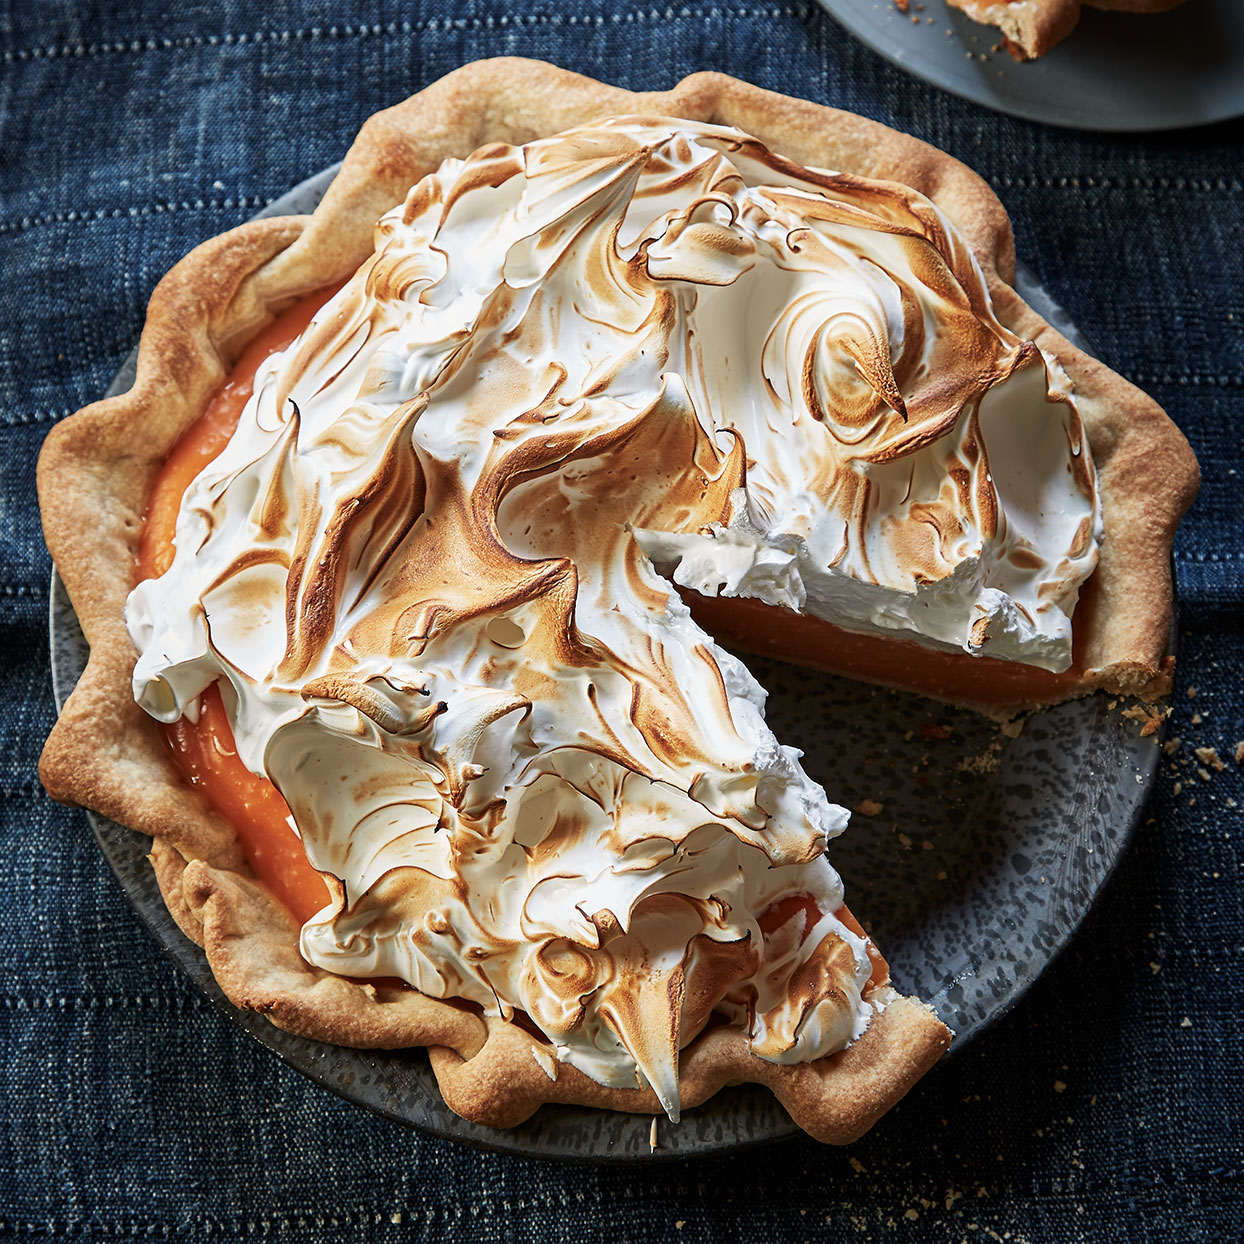 For this pie's filling we call for fresh squeezed grapefruit juice, but store-bought (not frozen) works well and may even give you more brightly colored results. The Italian meringue topping is made by beating hot sugar syrup into egg whites that are already beaten to stiff peaks. It's a bit more effort, but the meringue holds its shape longer.